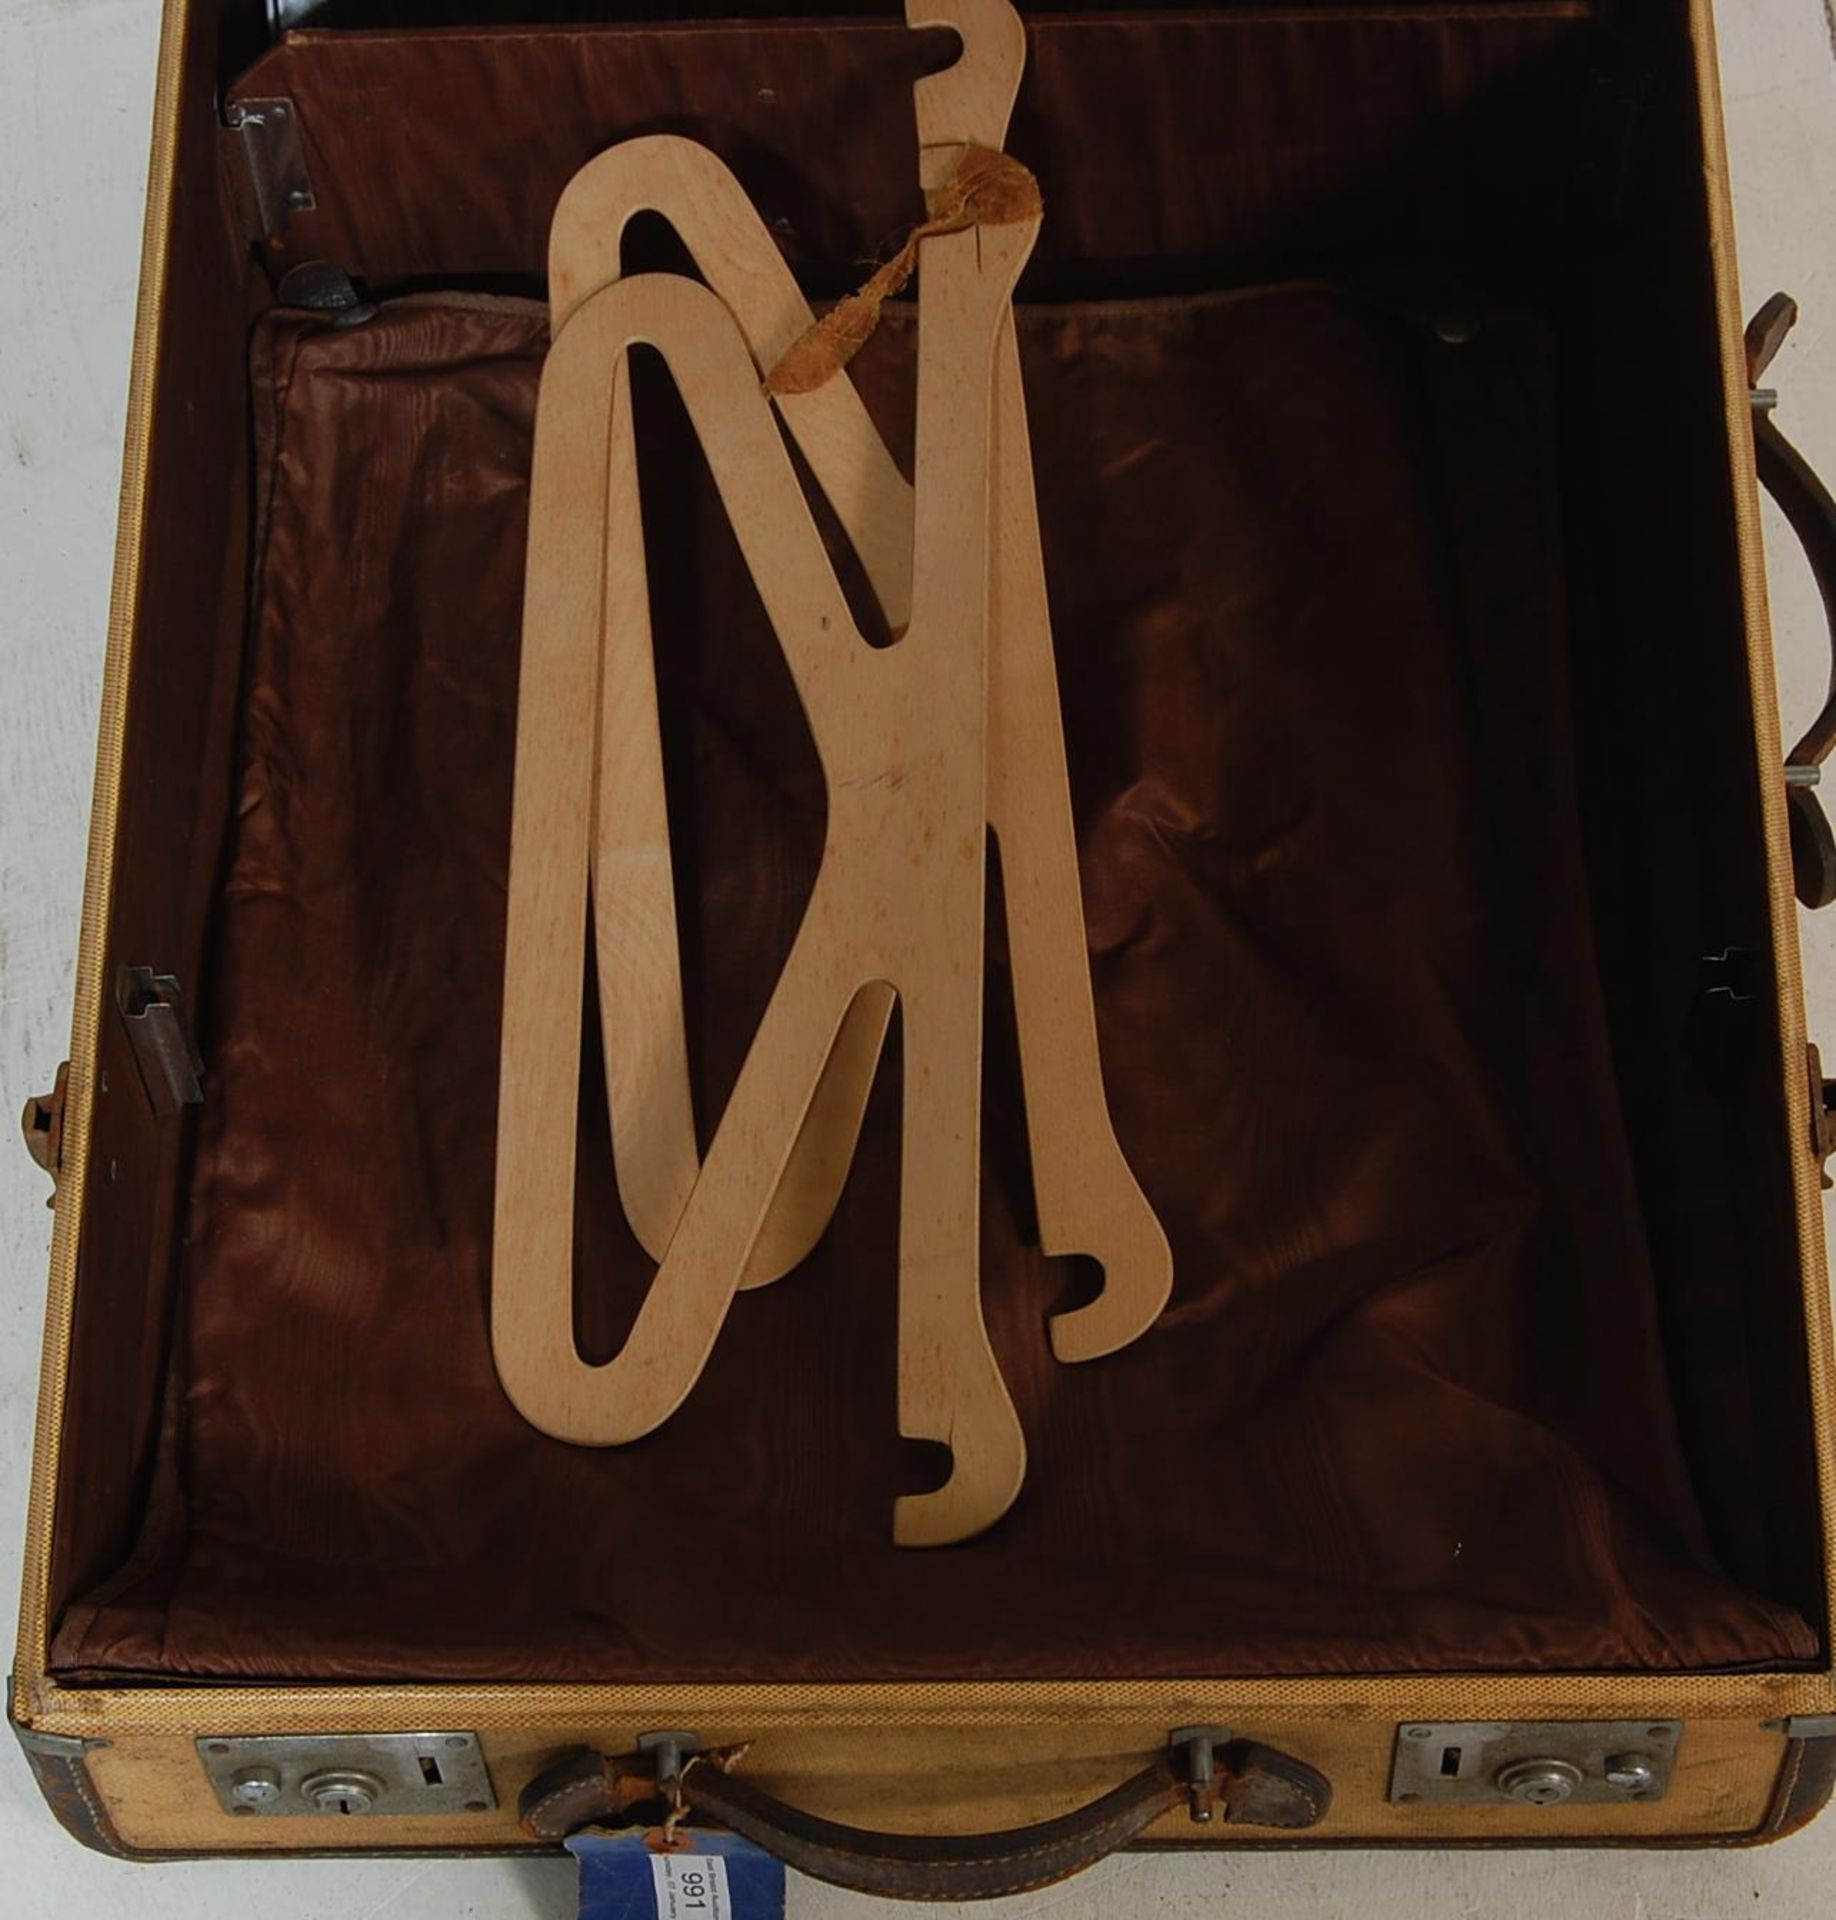 COLLECTION OF THREE EARLY 20TH CENTURY STEAMER TRUNKS - Image 5 of 12